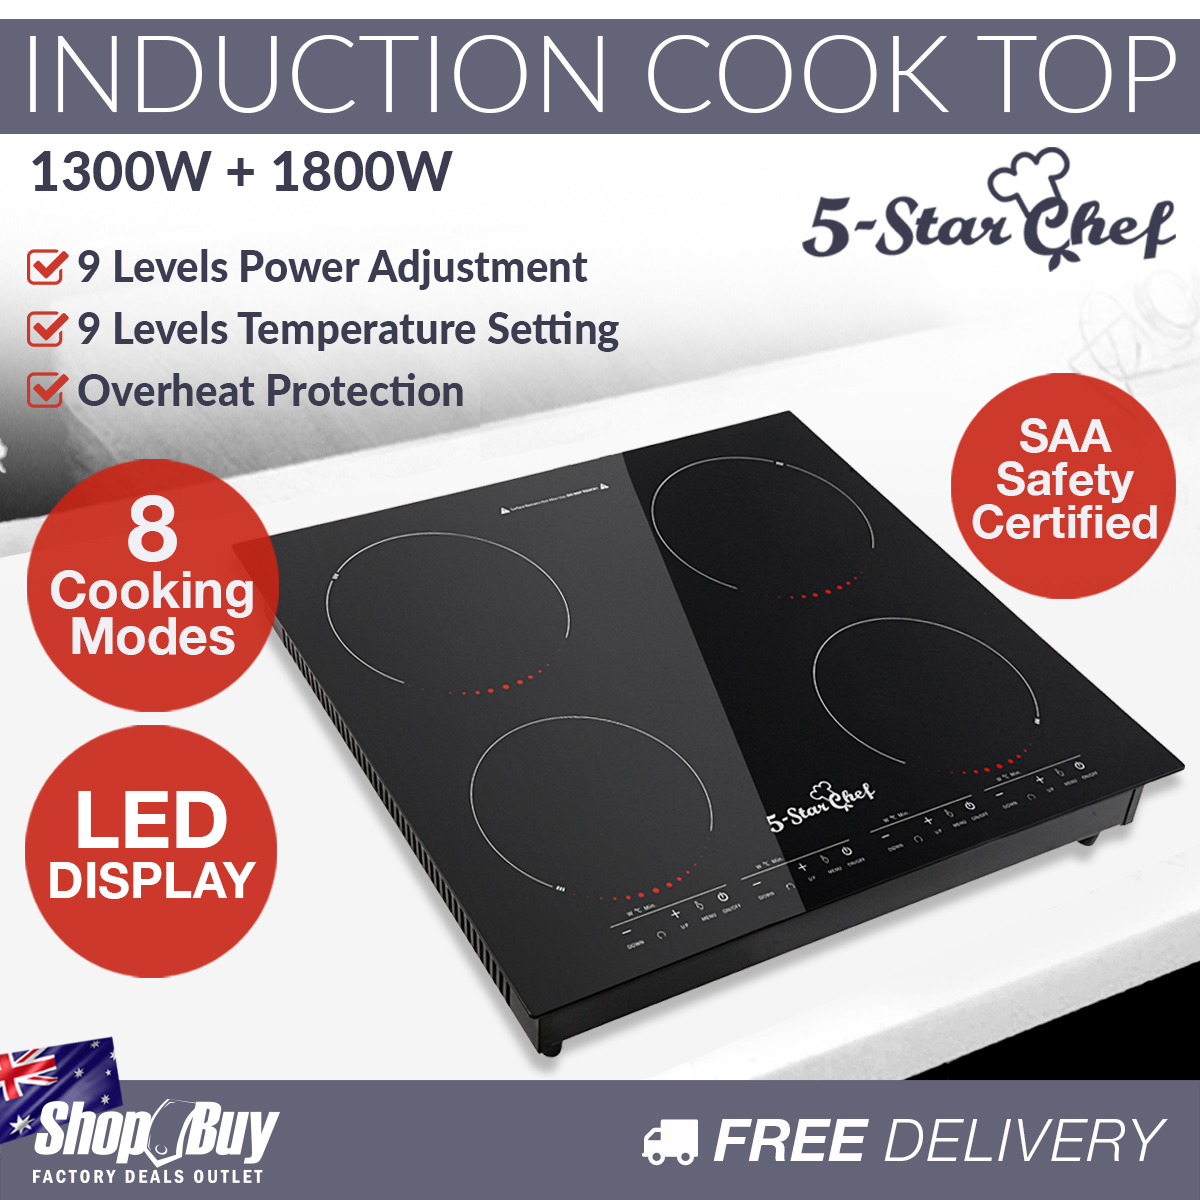 induction cooktop electric stove 4 burner ceramic hotplate cook top cooker ebay. Black Bedroom Furniture Sets. Home Design Ideas